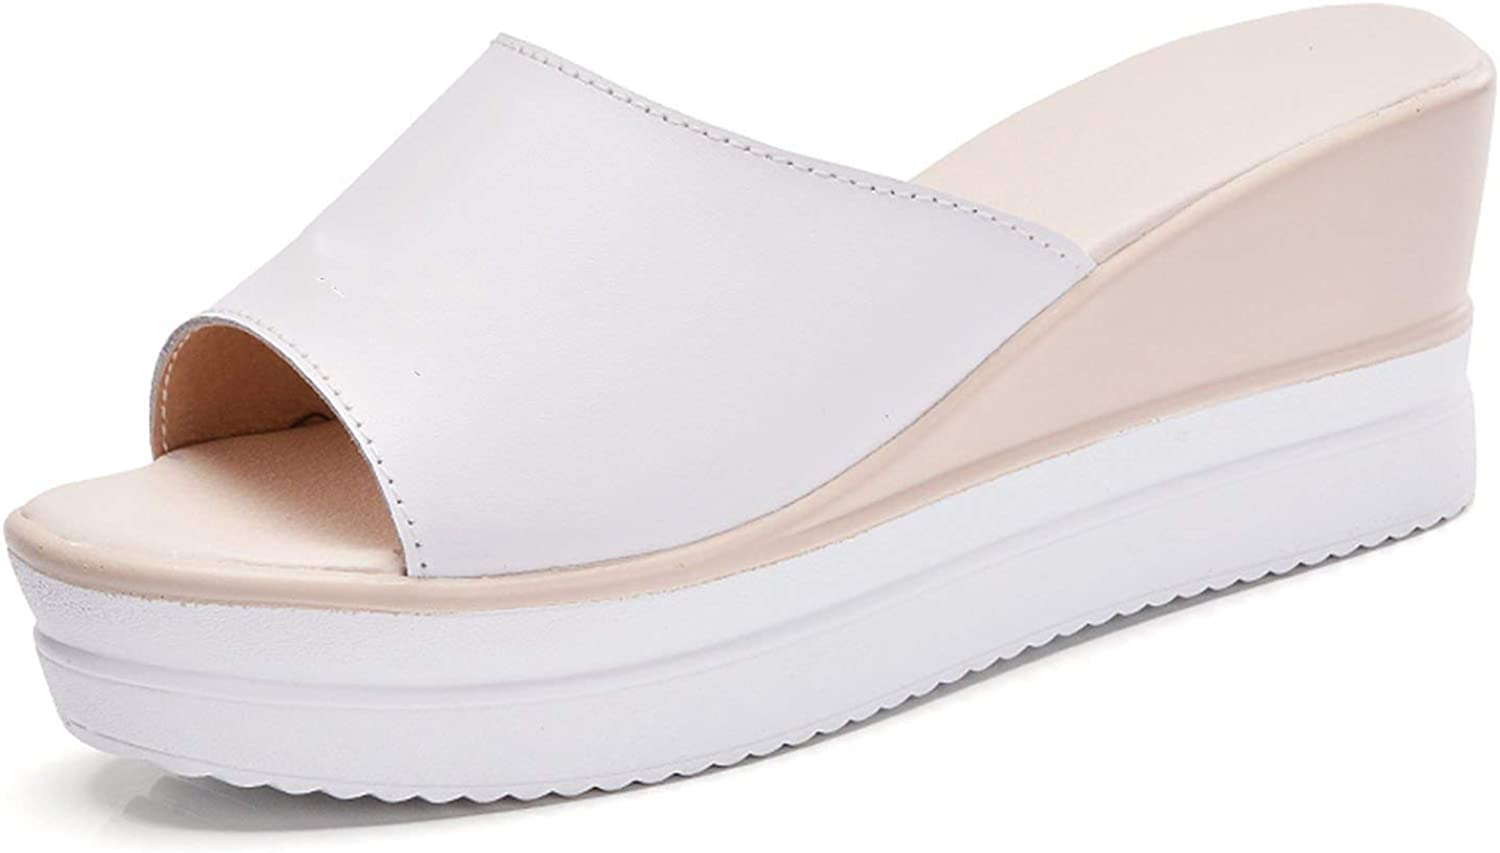 The Hot Rock-Sandals Summer Women Flat Platform Slippers Slides shoes Woman Slip on Open Toe Solid White Leather Wedge